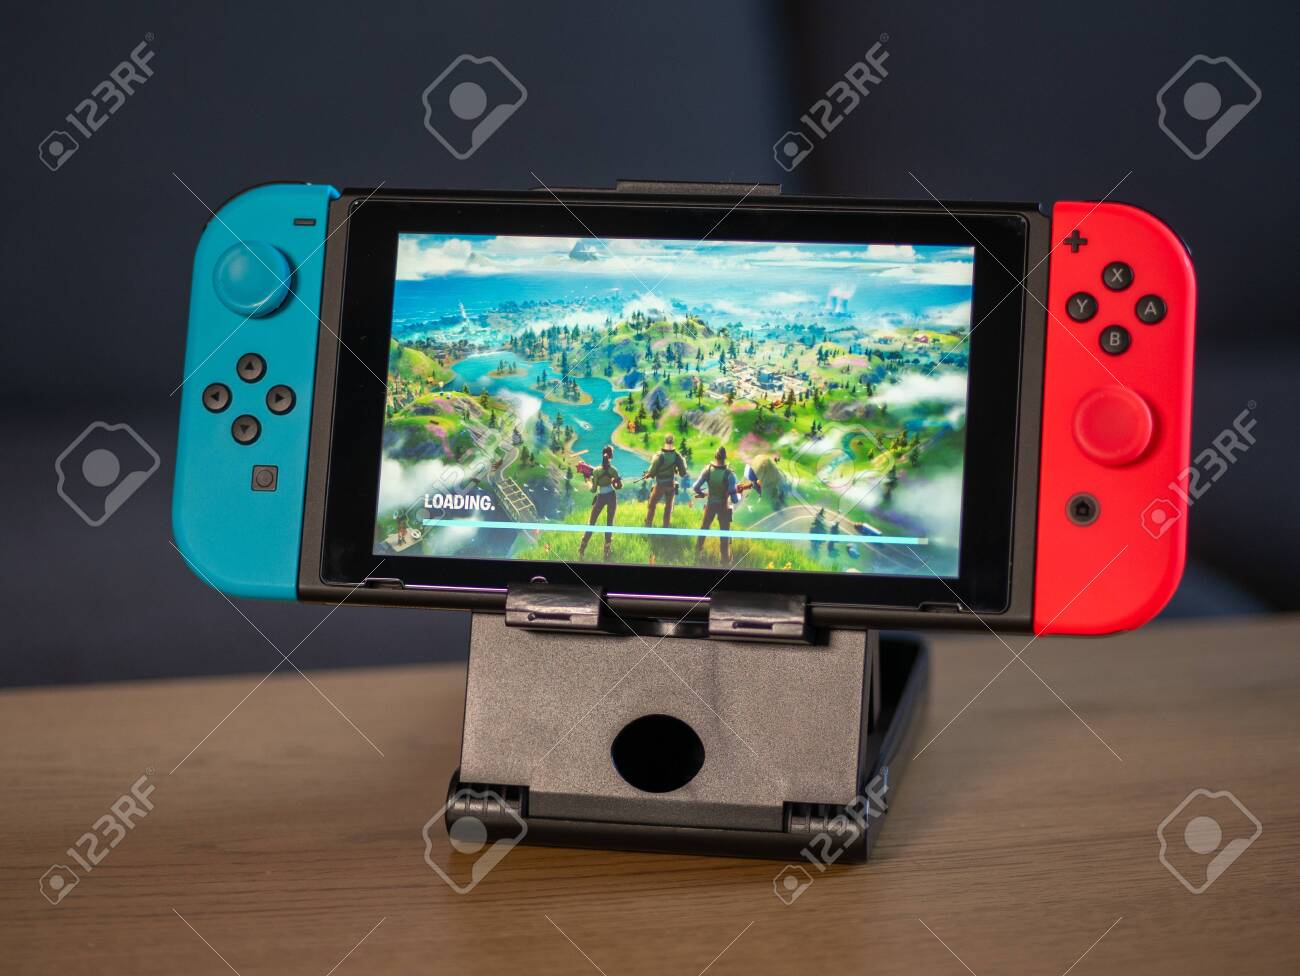 Uk Feb 2020 Nintendo Switch Games Console With Fortnite Game Stock Photo Picture And Royalty Free Image Image 141403135